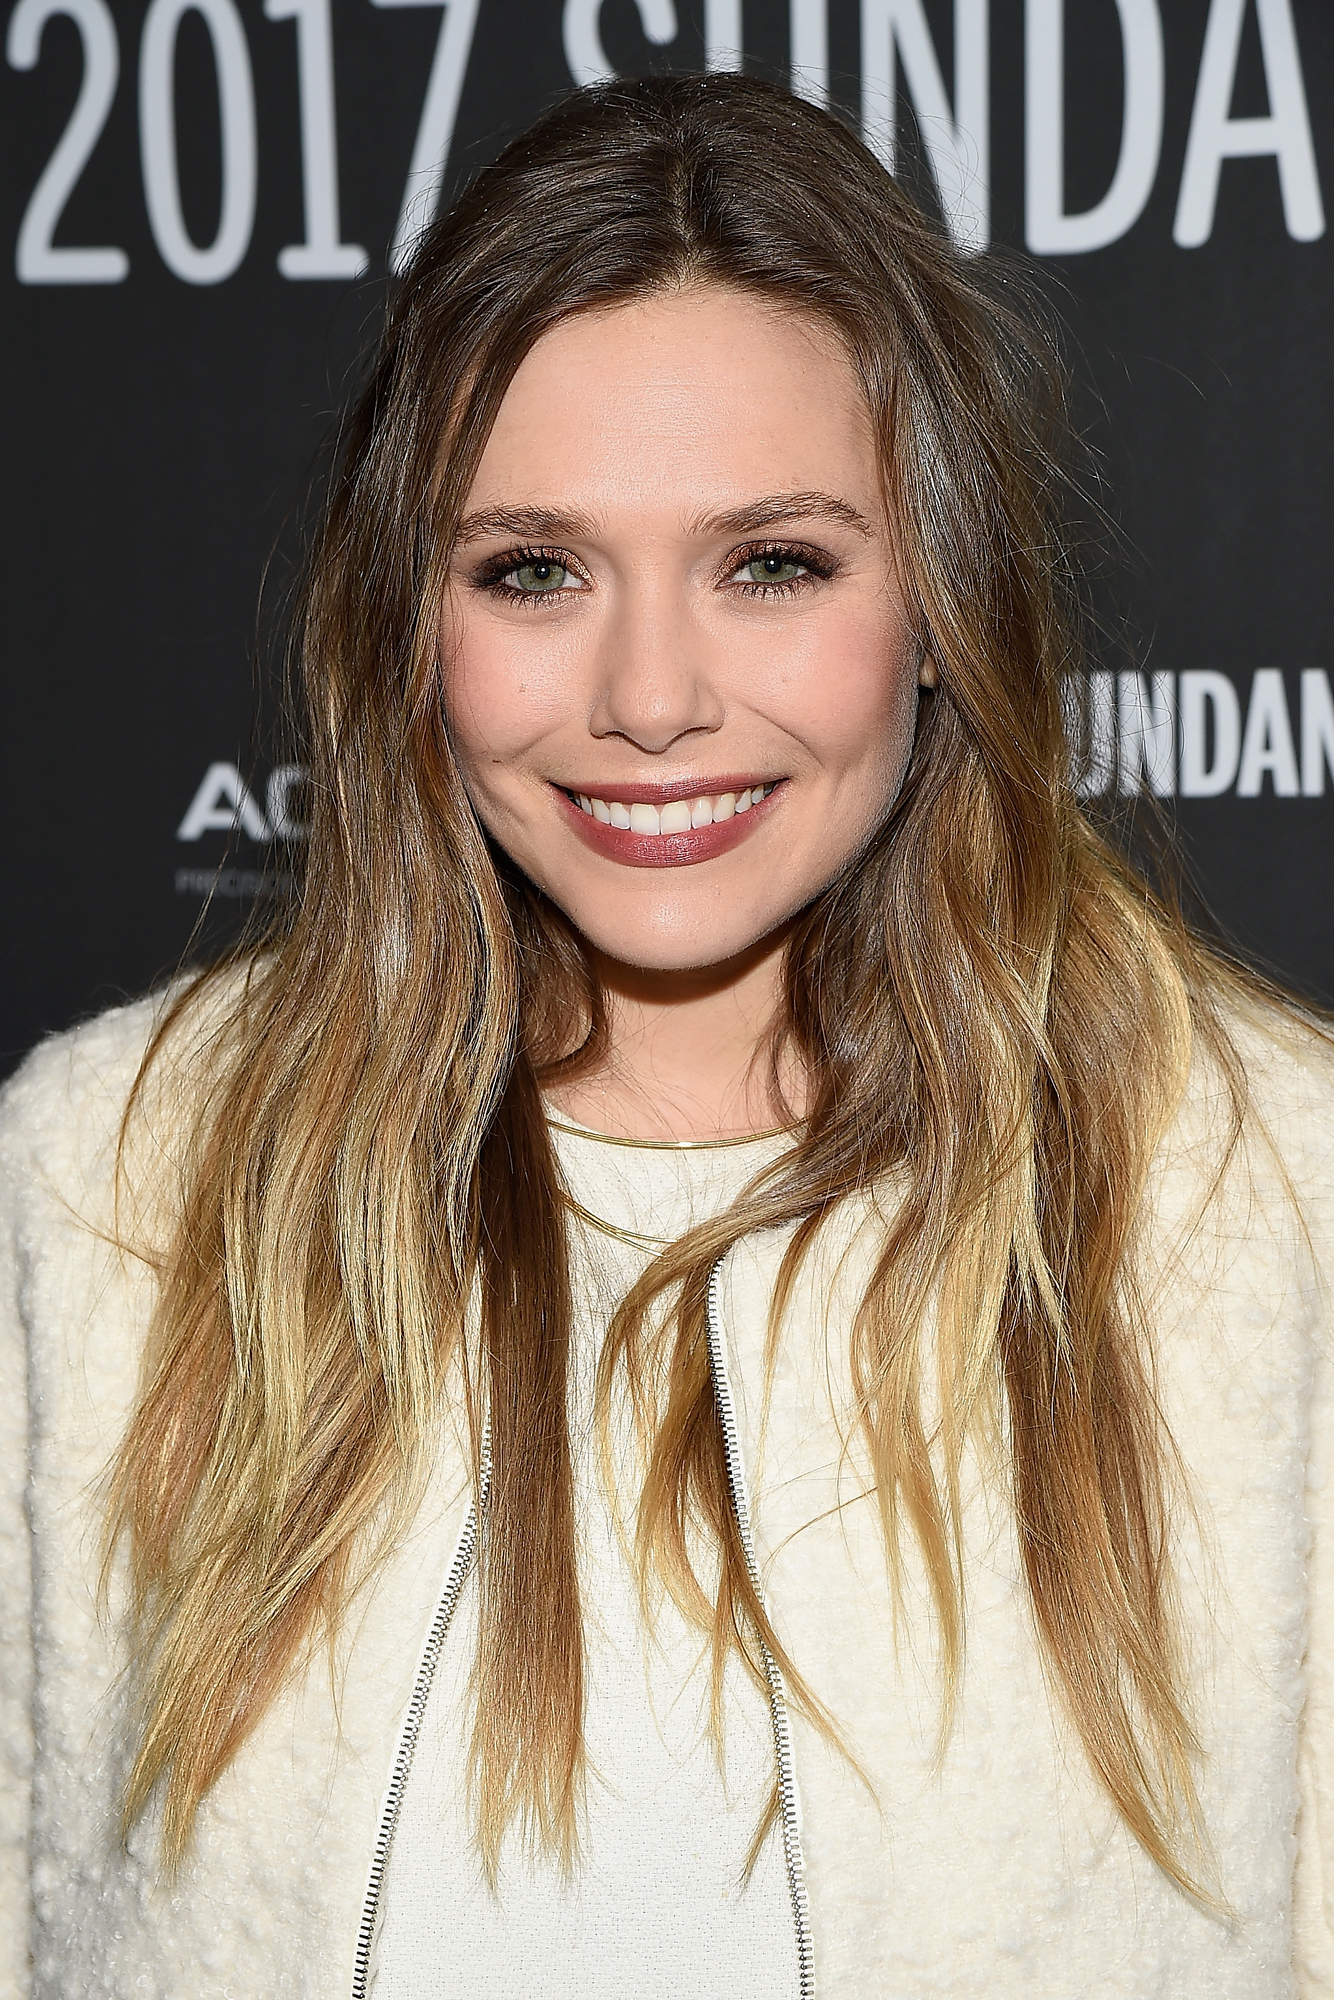 Actress Elizabeth Olsen attends the 'Ingrid Goes West' premiere during day 2 of the 2017 Sundance Film Festival at Library Center Theater on January 20, 2017 in Park City, Utah.